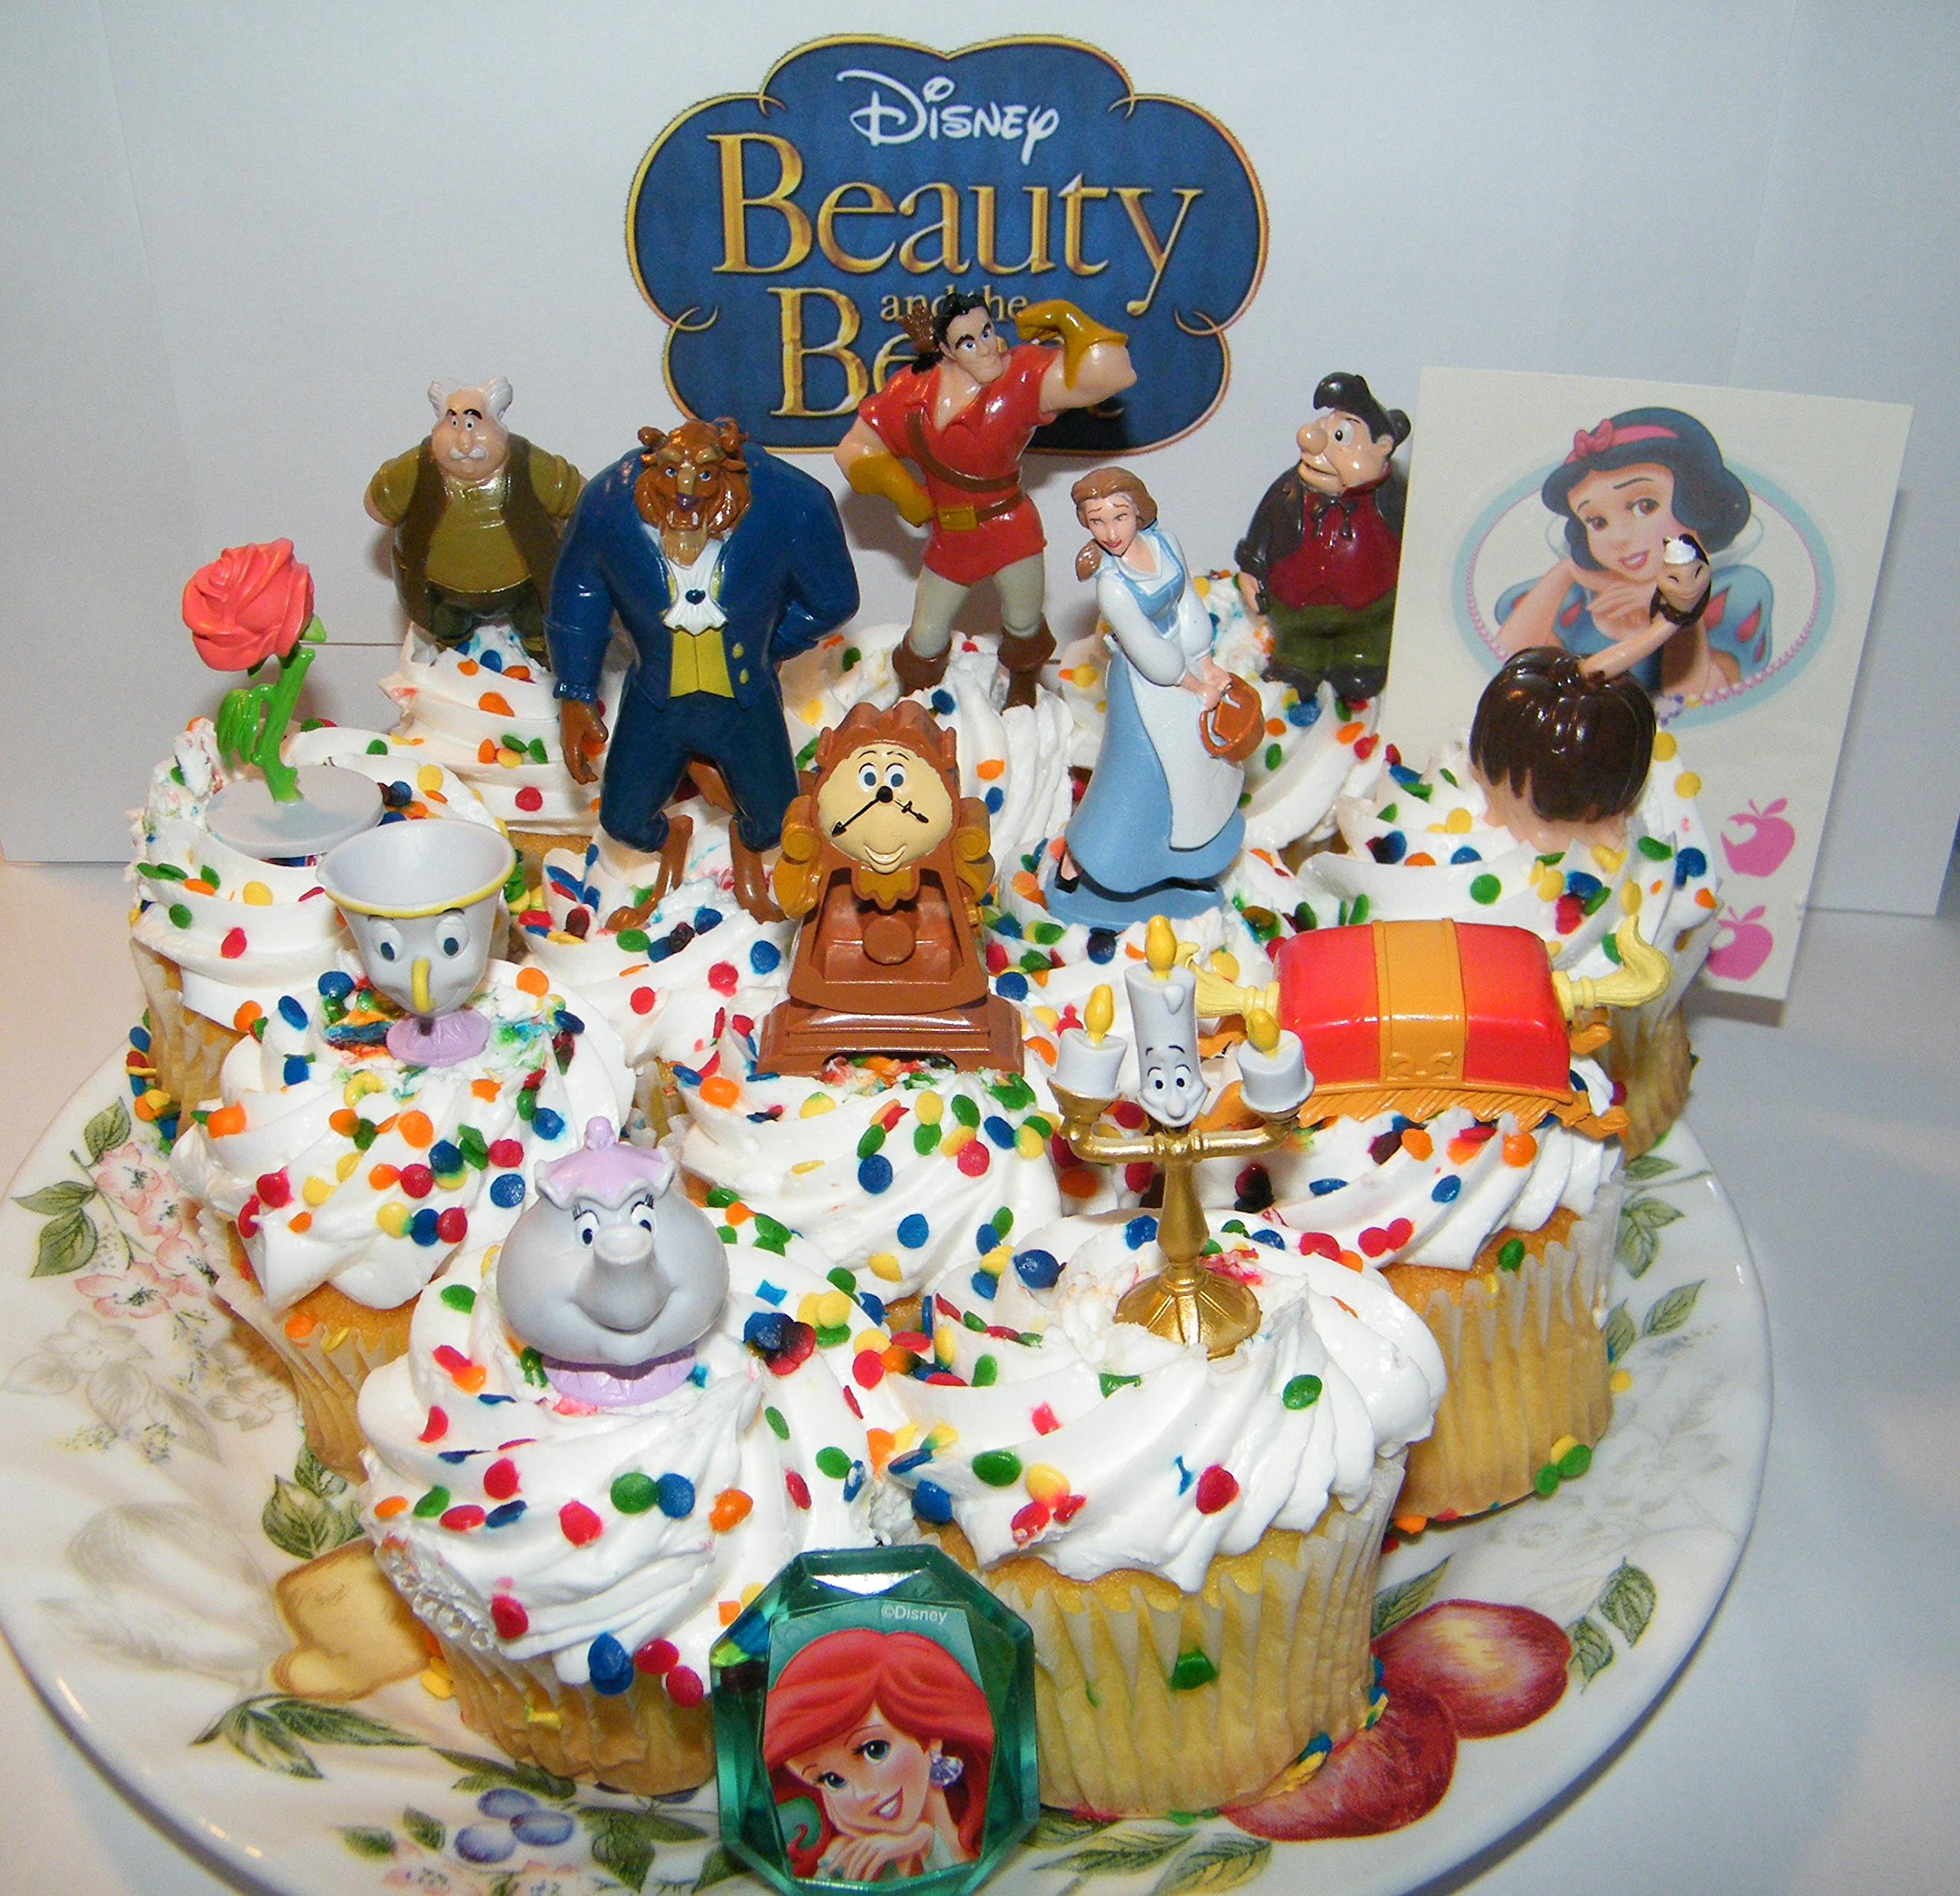 Disney Beauty and the Beast Deluxe Mini Cake Toppers Cupcake Decorations Set of 14 with Figures, a Sticker Sheet and ToyRing Featuring Belle, the Prince Beast, Chip and More! by Beauty & The Beast